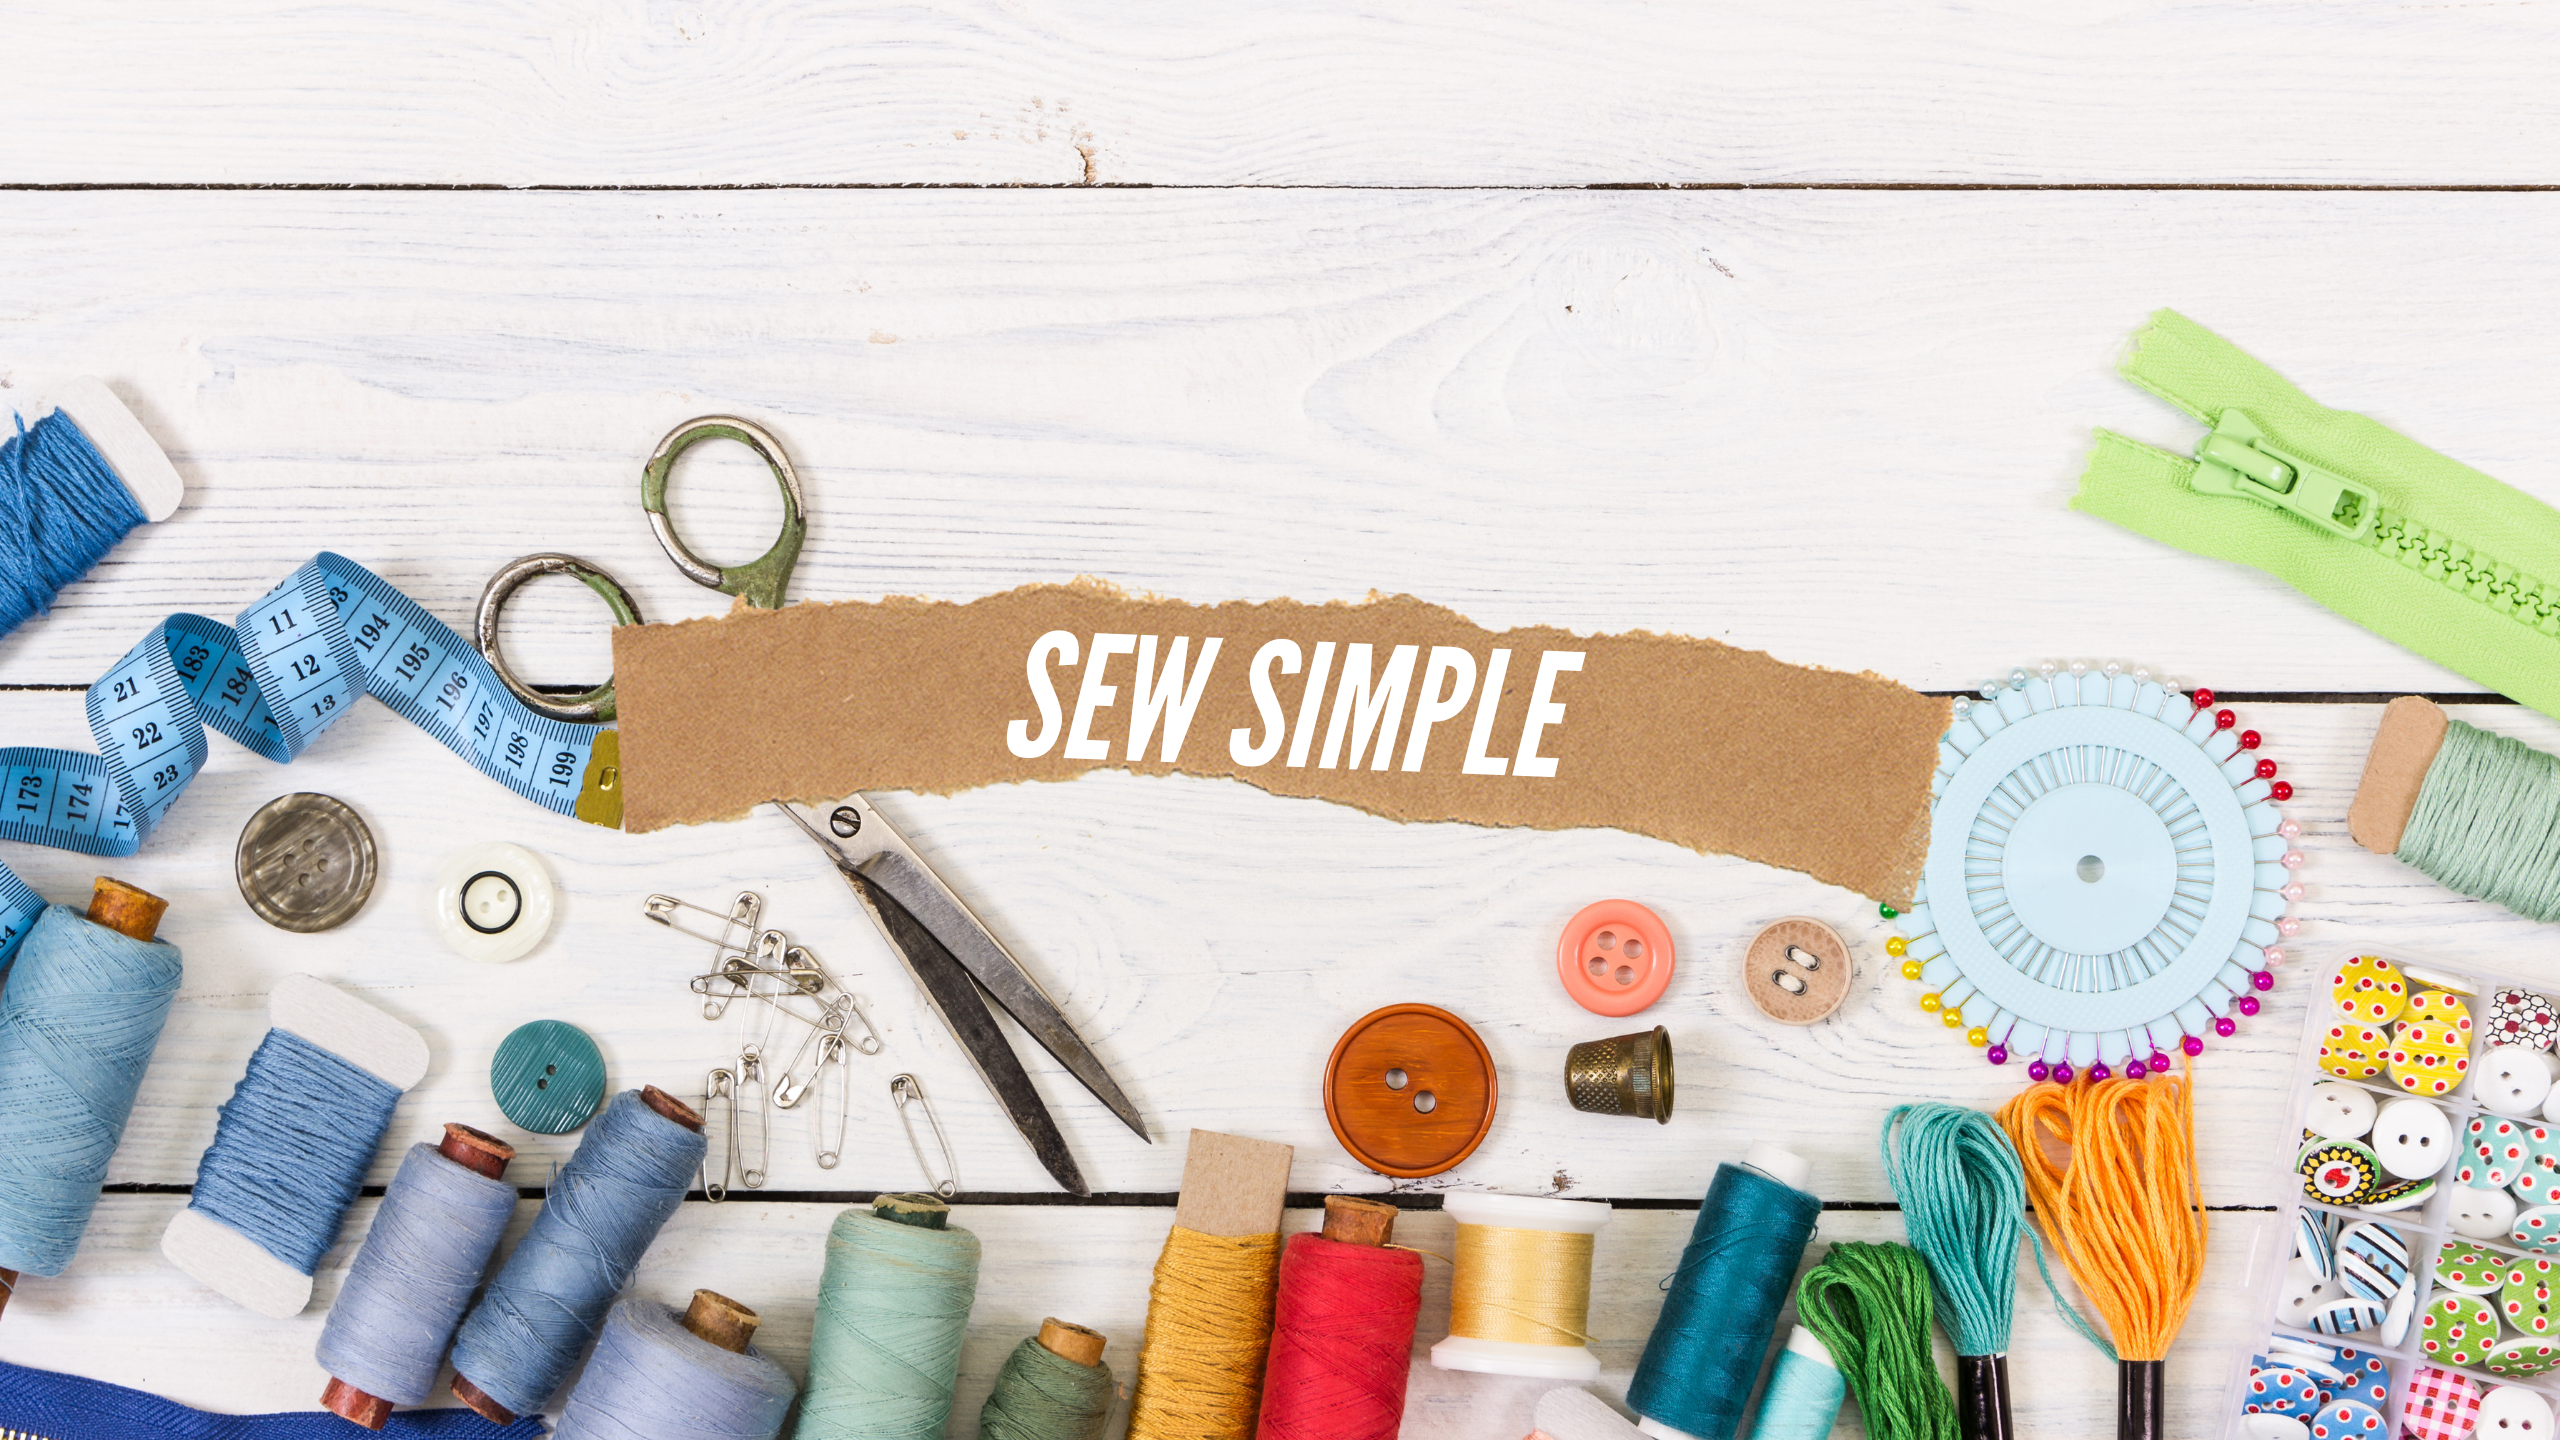 Sew Simple flyer image